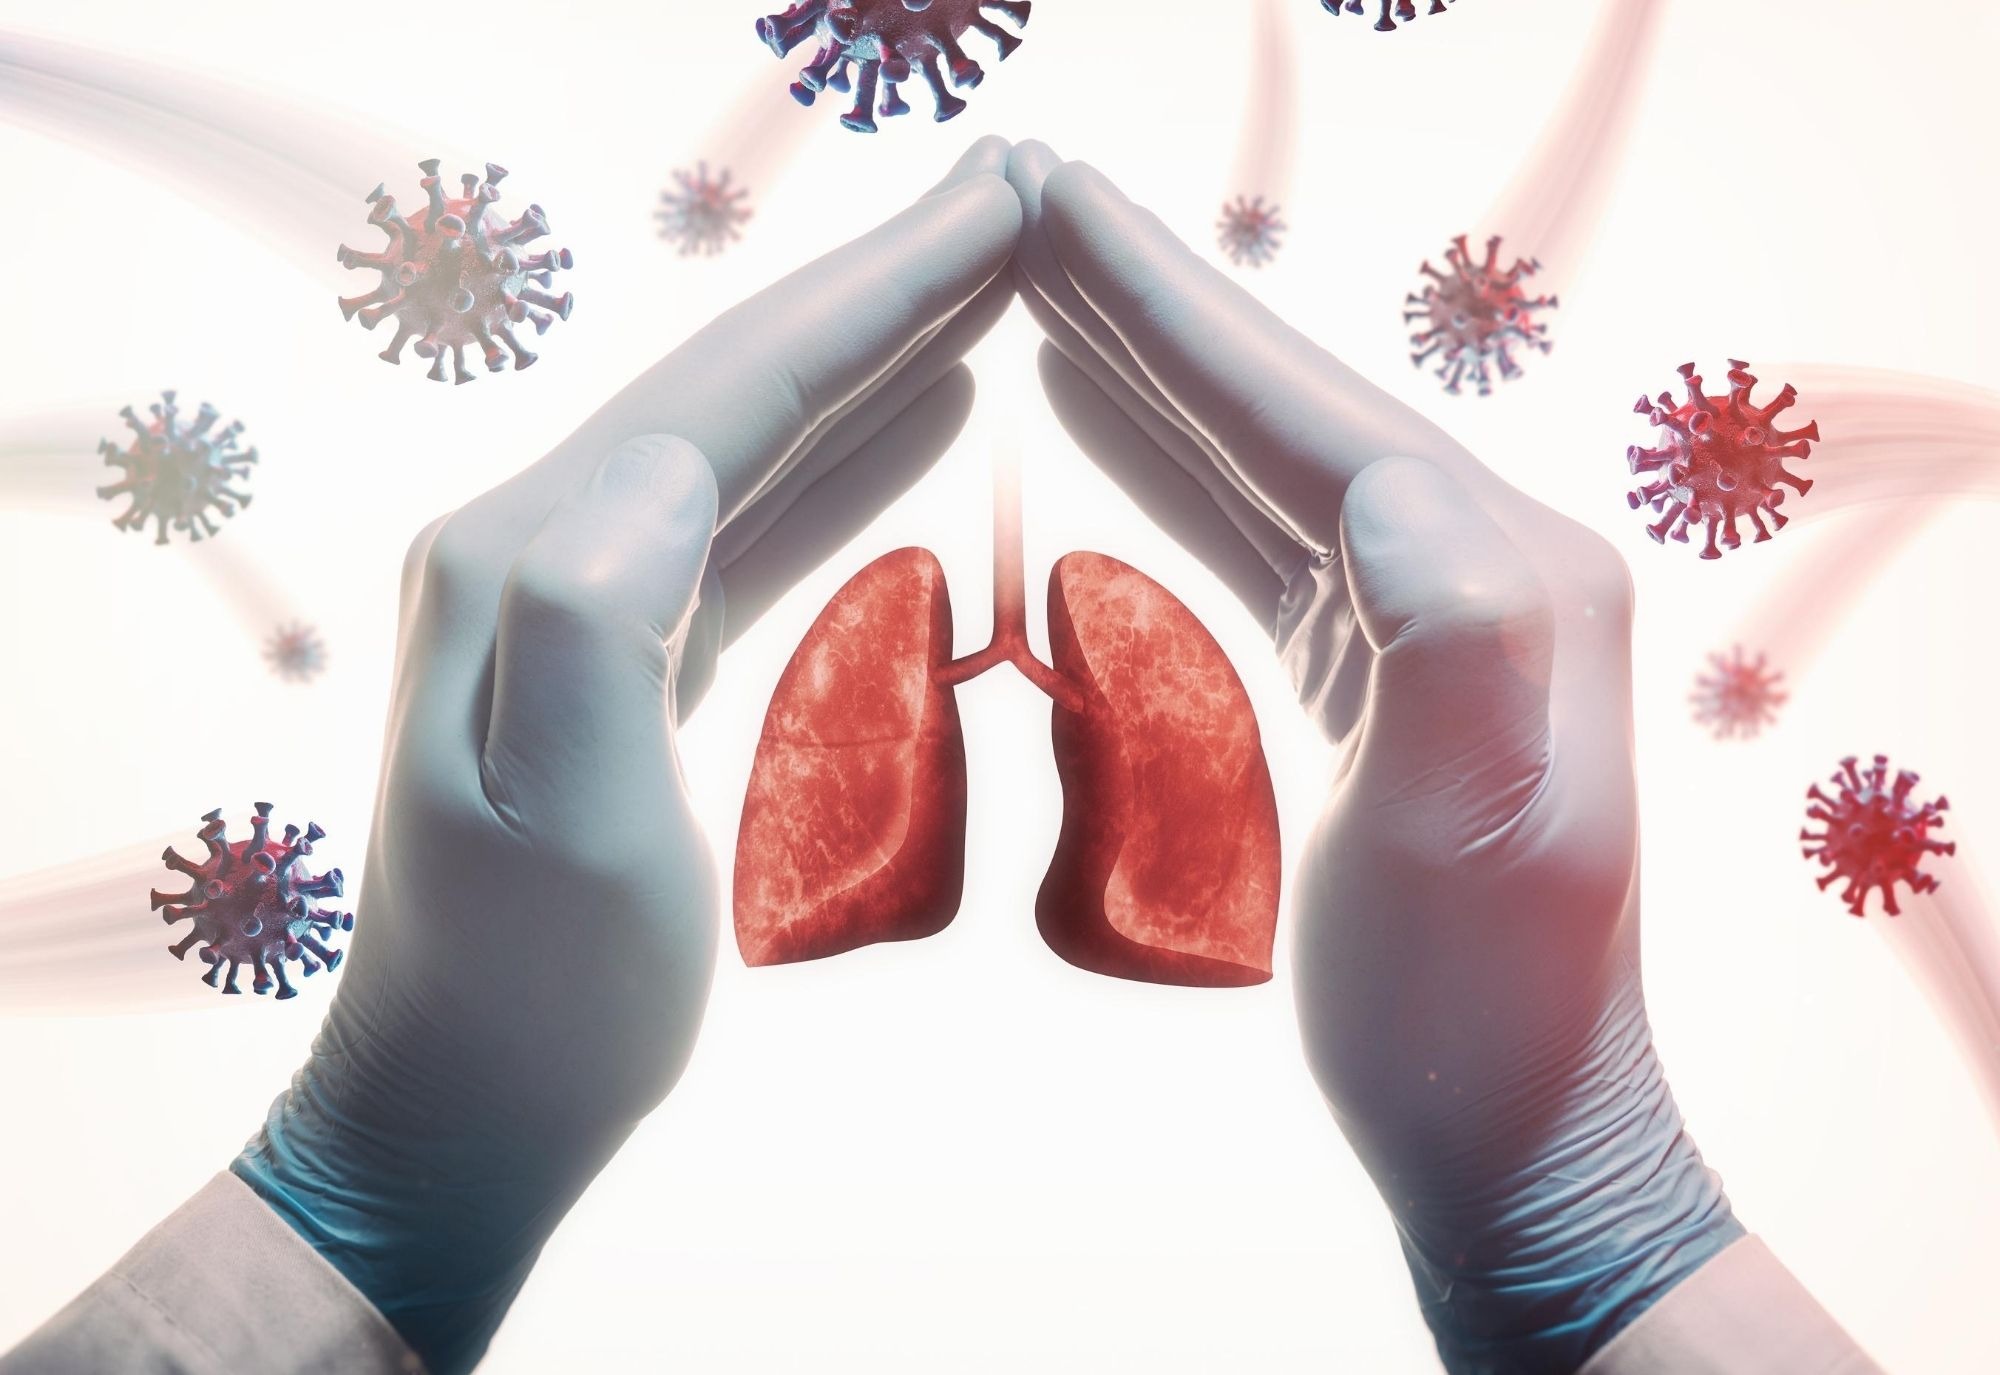 What are the best foods to protect our lungs?